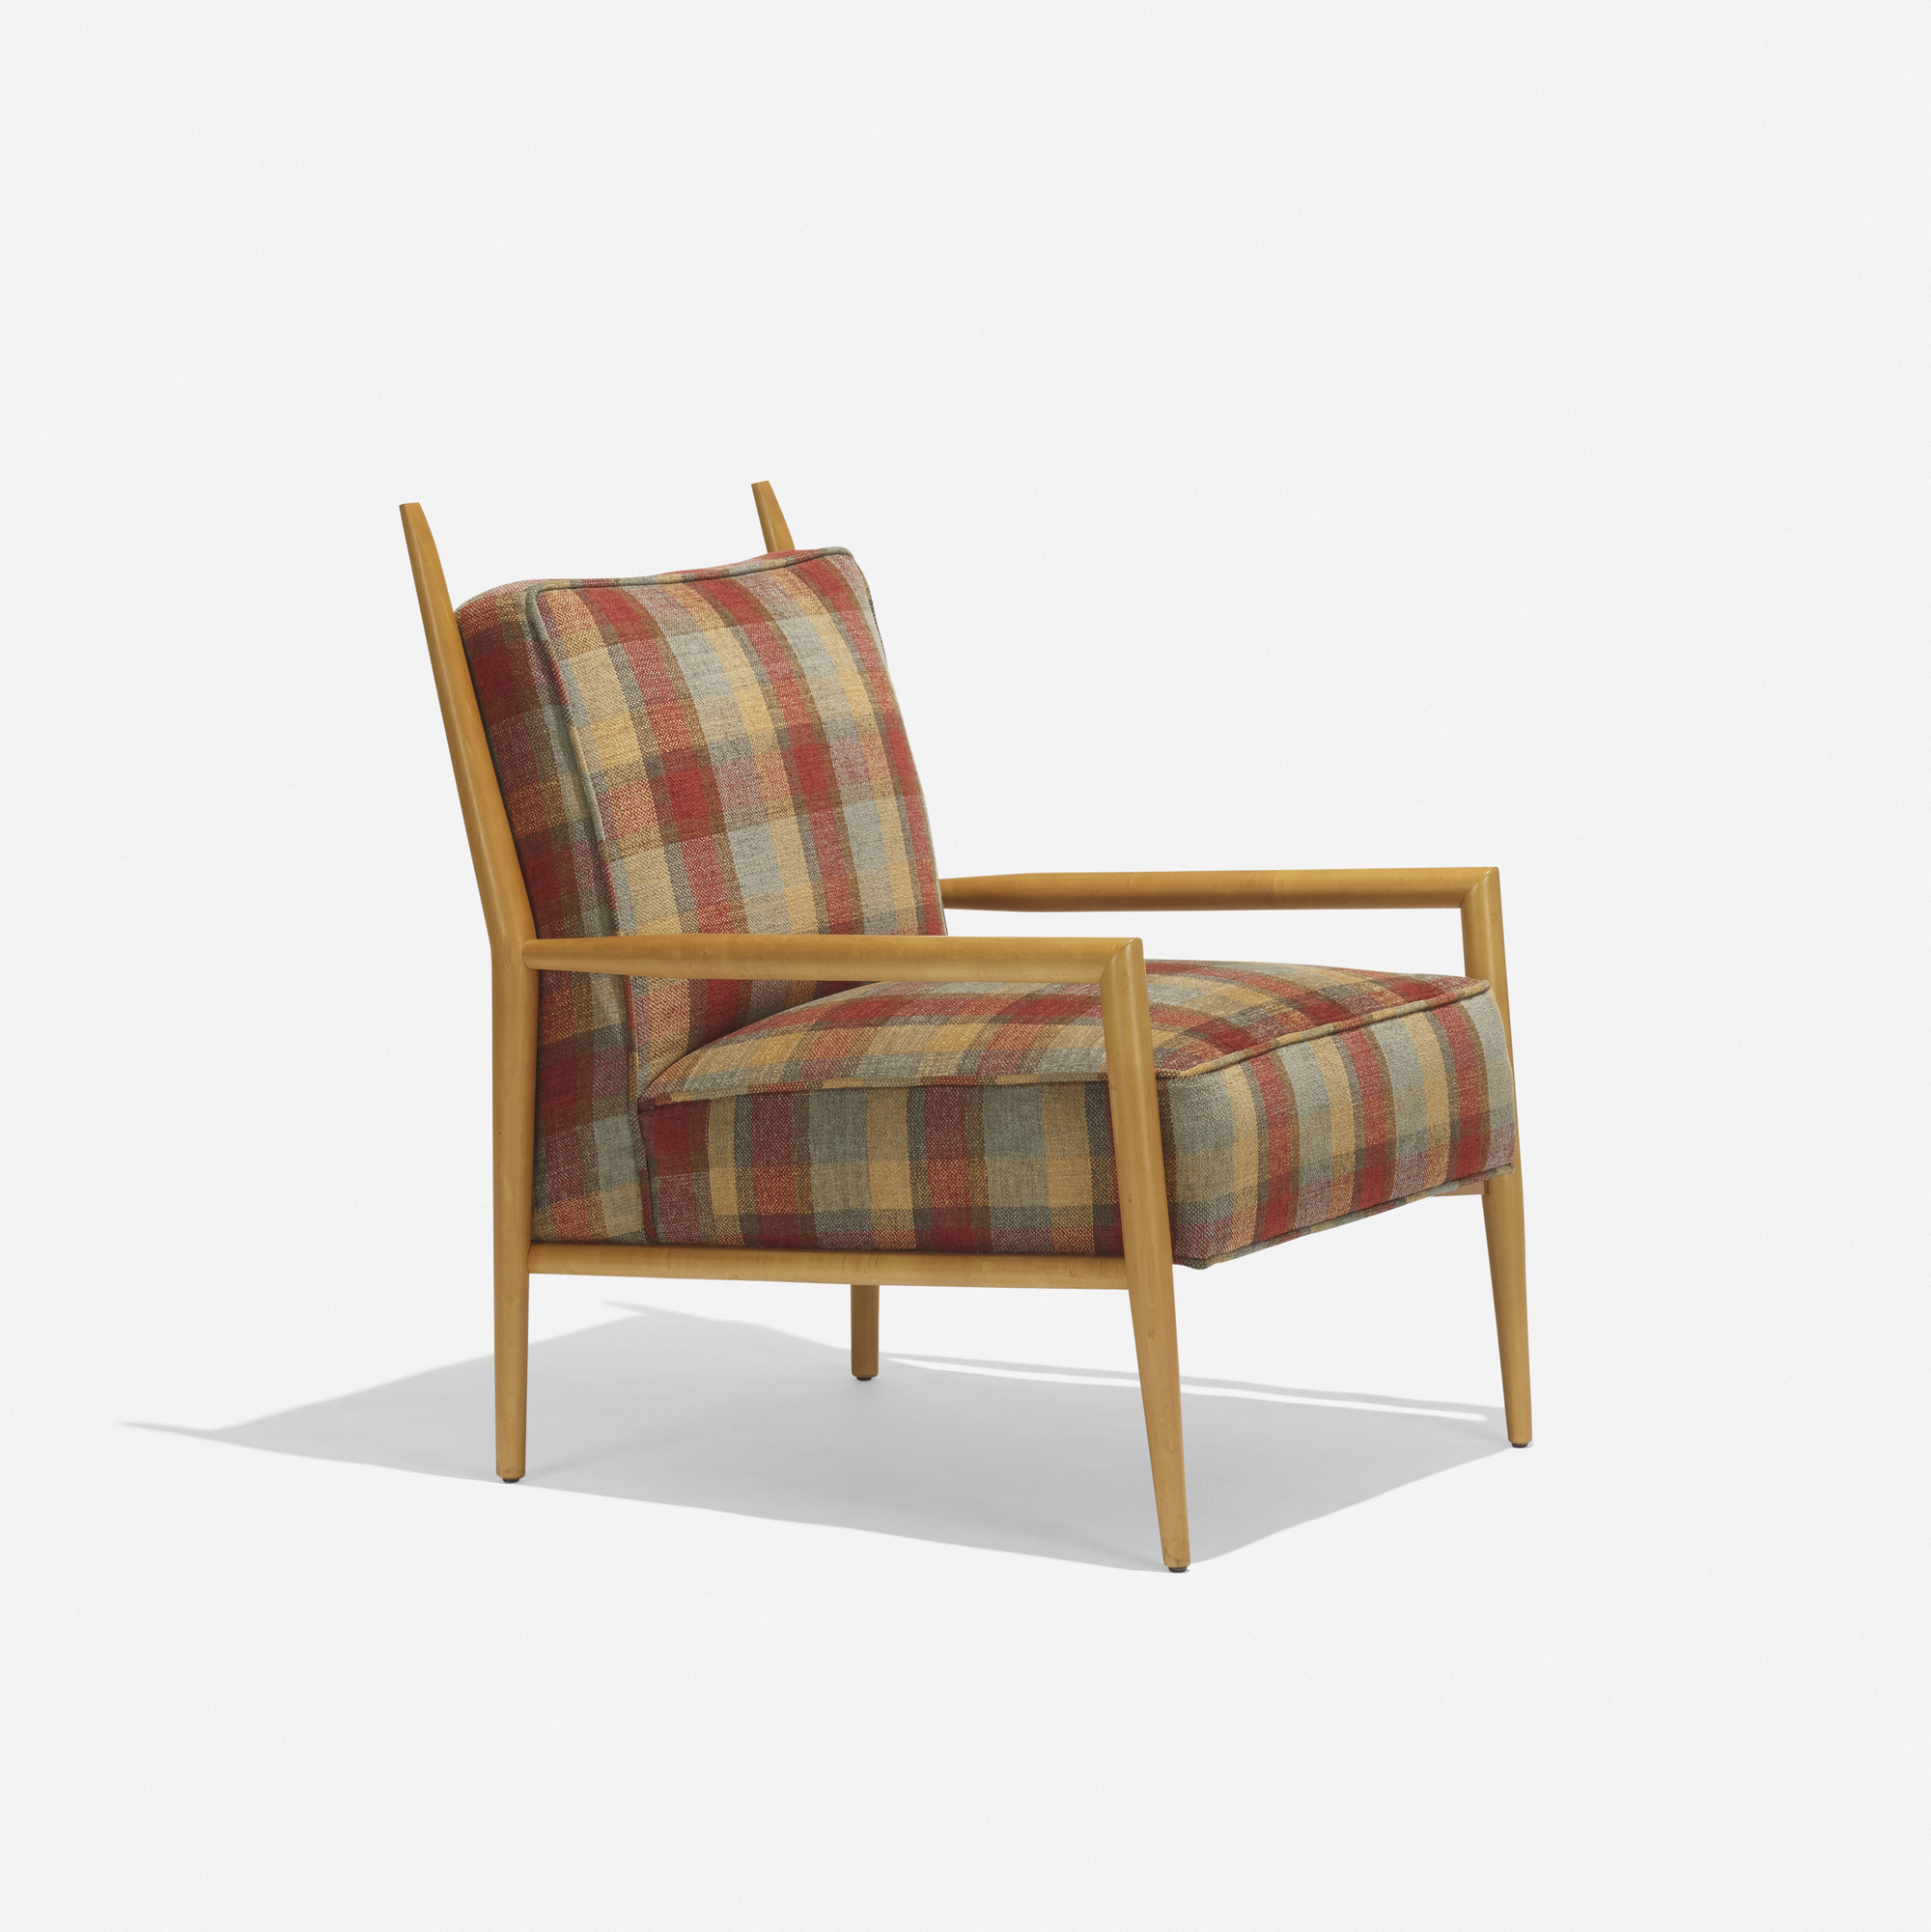 241: Paul McCobb / Planner Group Lounge Chair, Model 3082 (1 Of 3